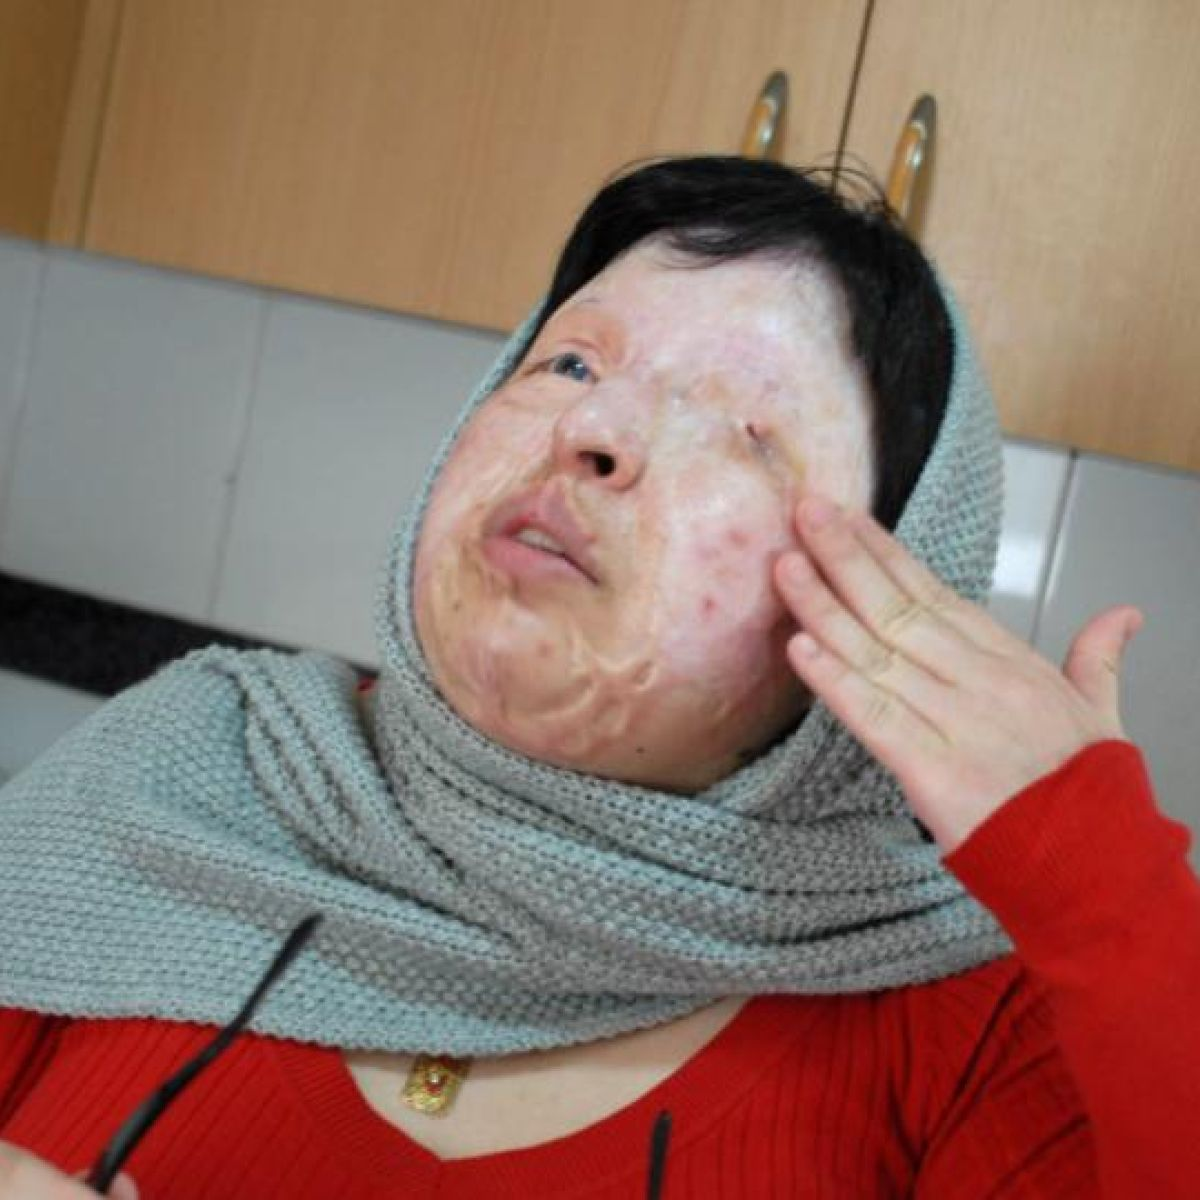 Iran applies Sharia law and blinds man over acid attack